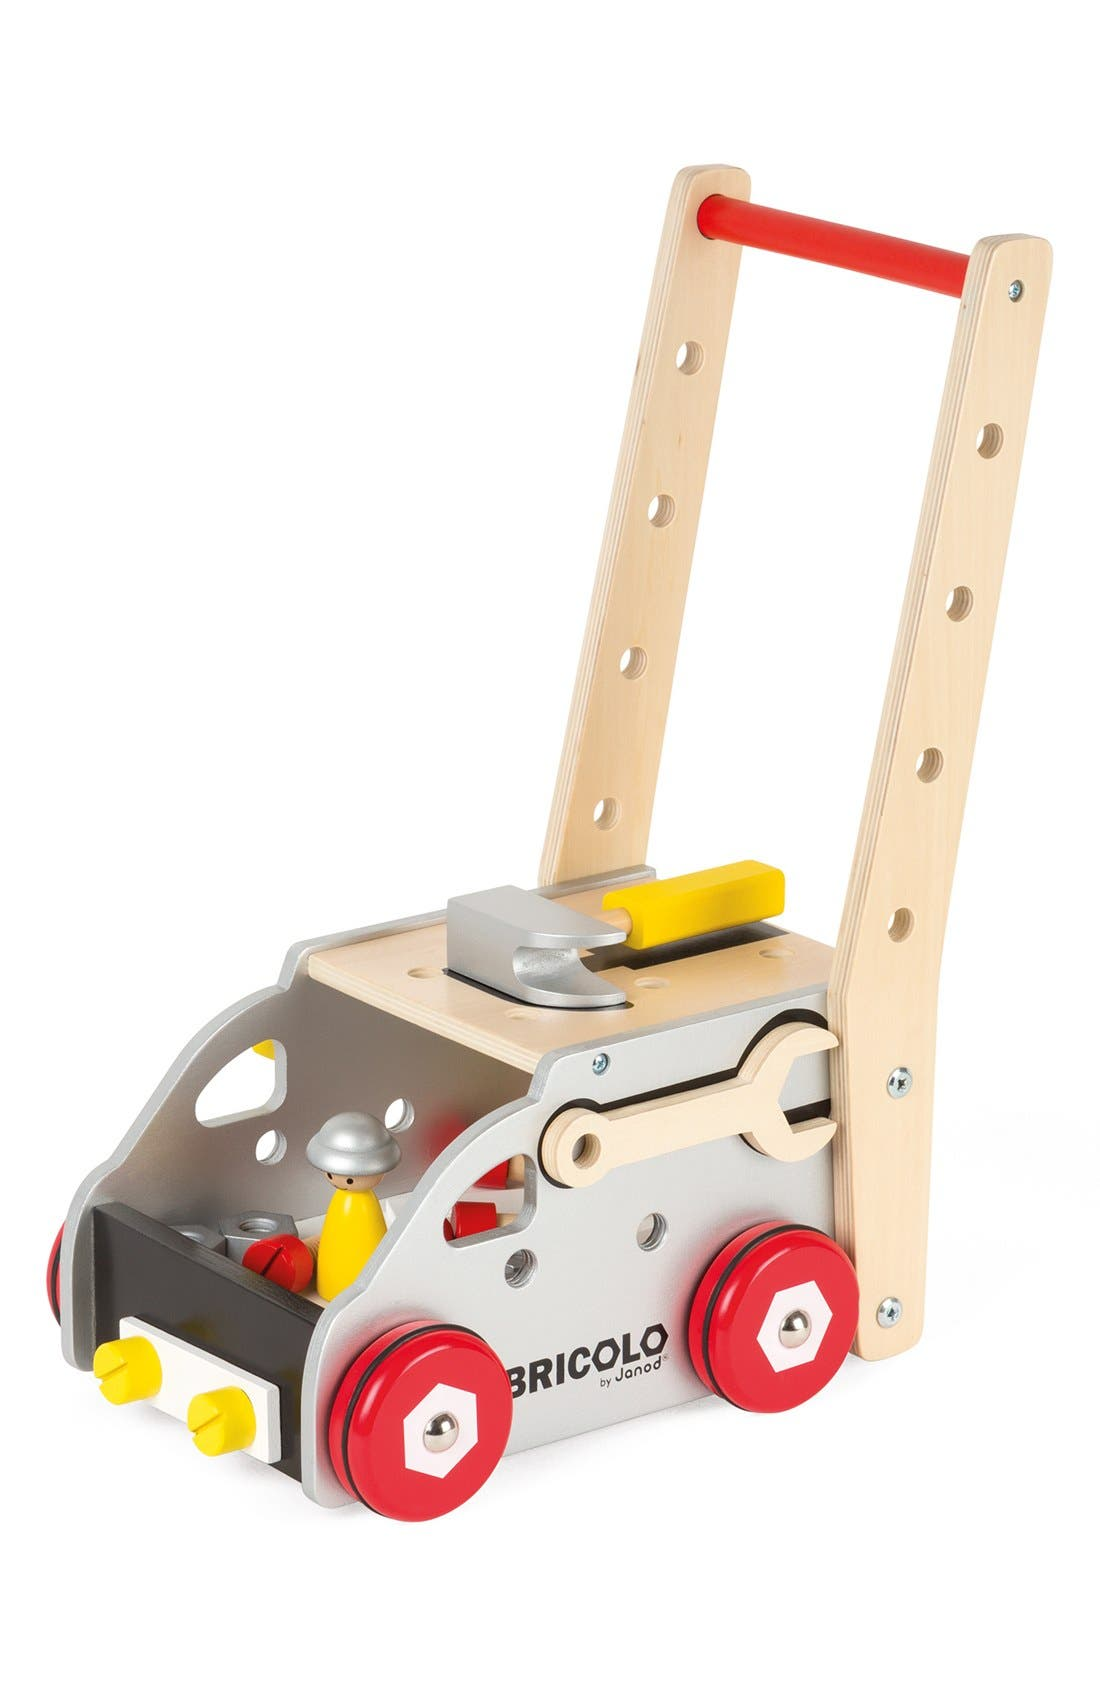 Main Image - Janod 'Bricolo Redmaster Workbench and Trolley' Toy Set